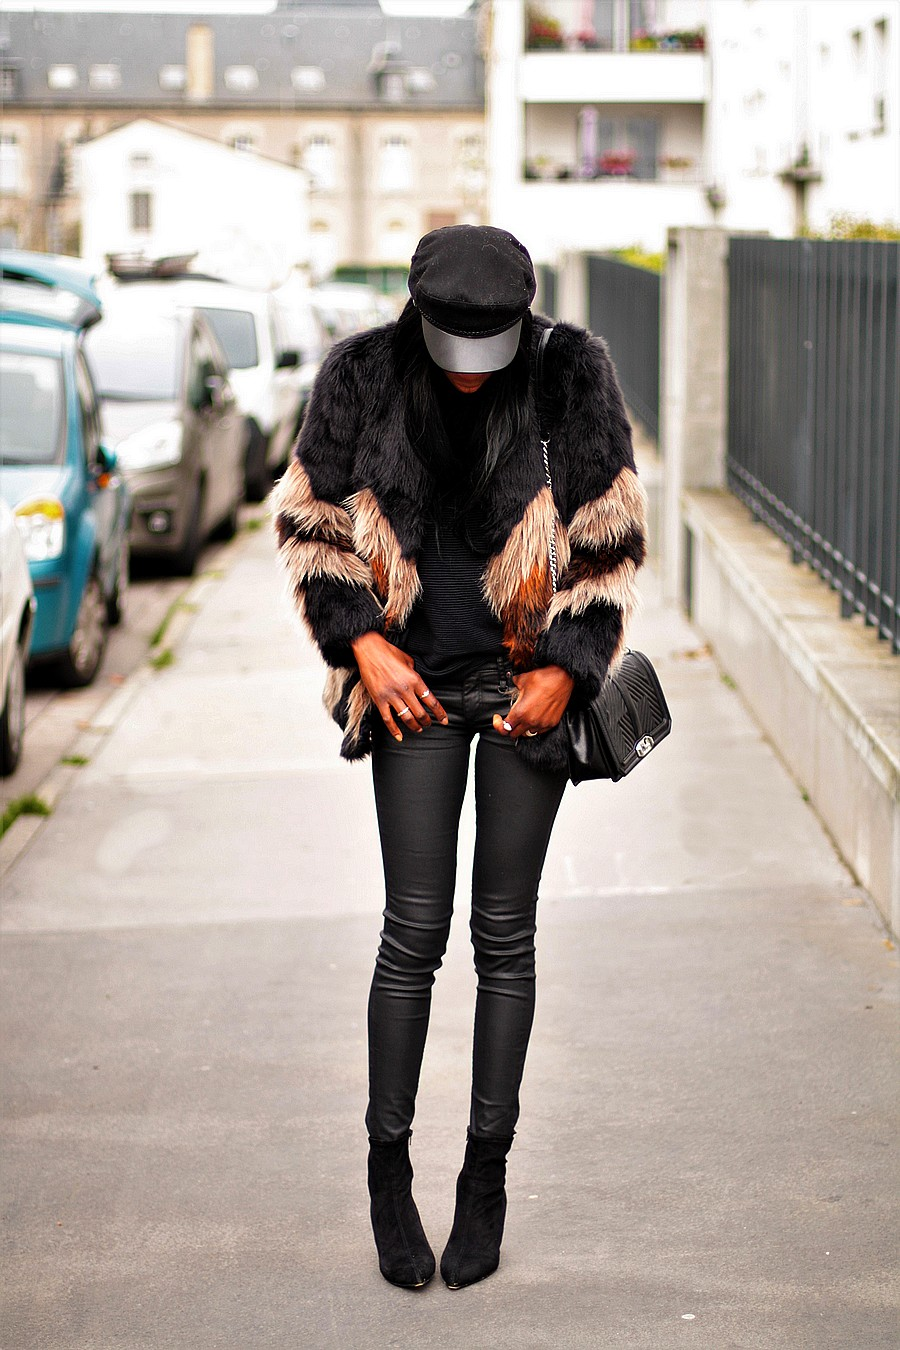 sac-chanel-boy-pas-cher-idee-look-hiver